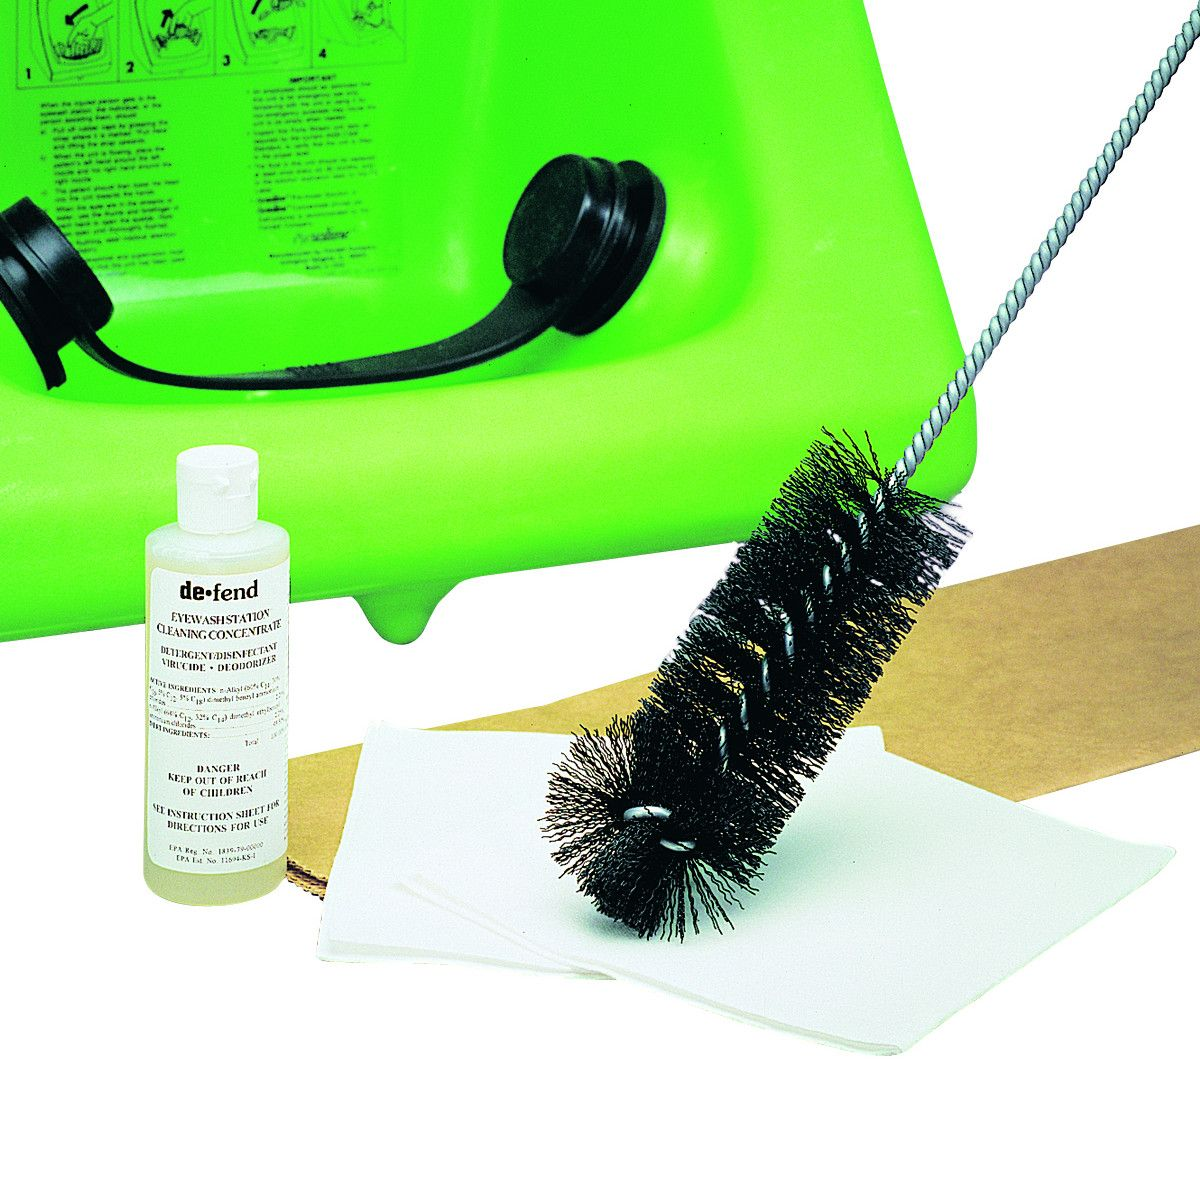 HS_honeywell_eyewash_cleaning_kit_32_000518_0000